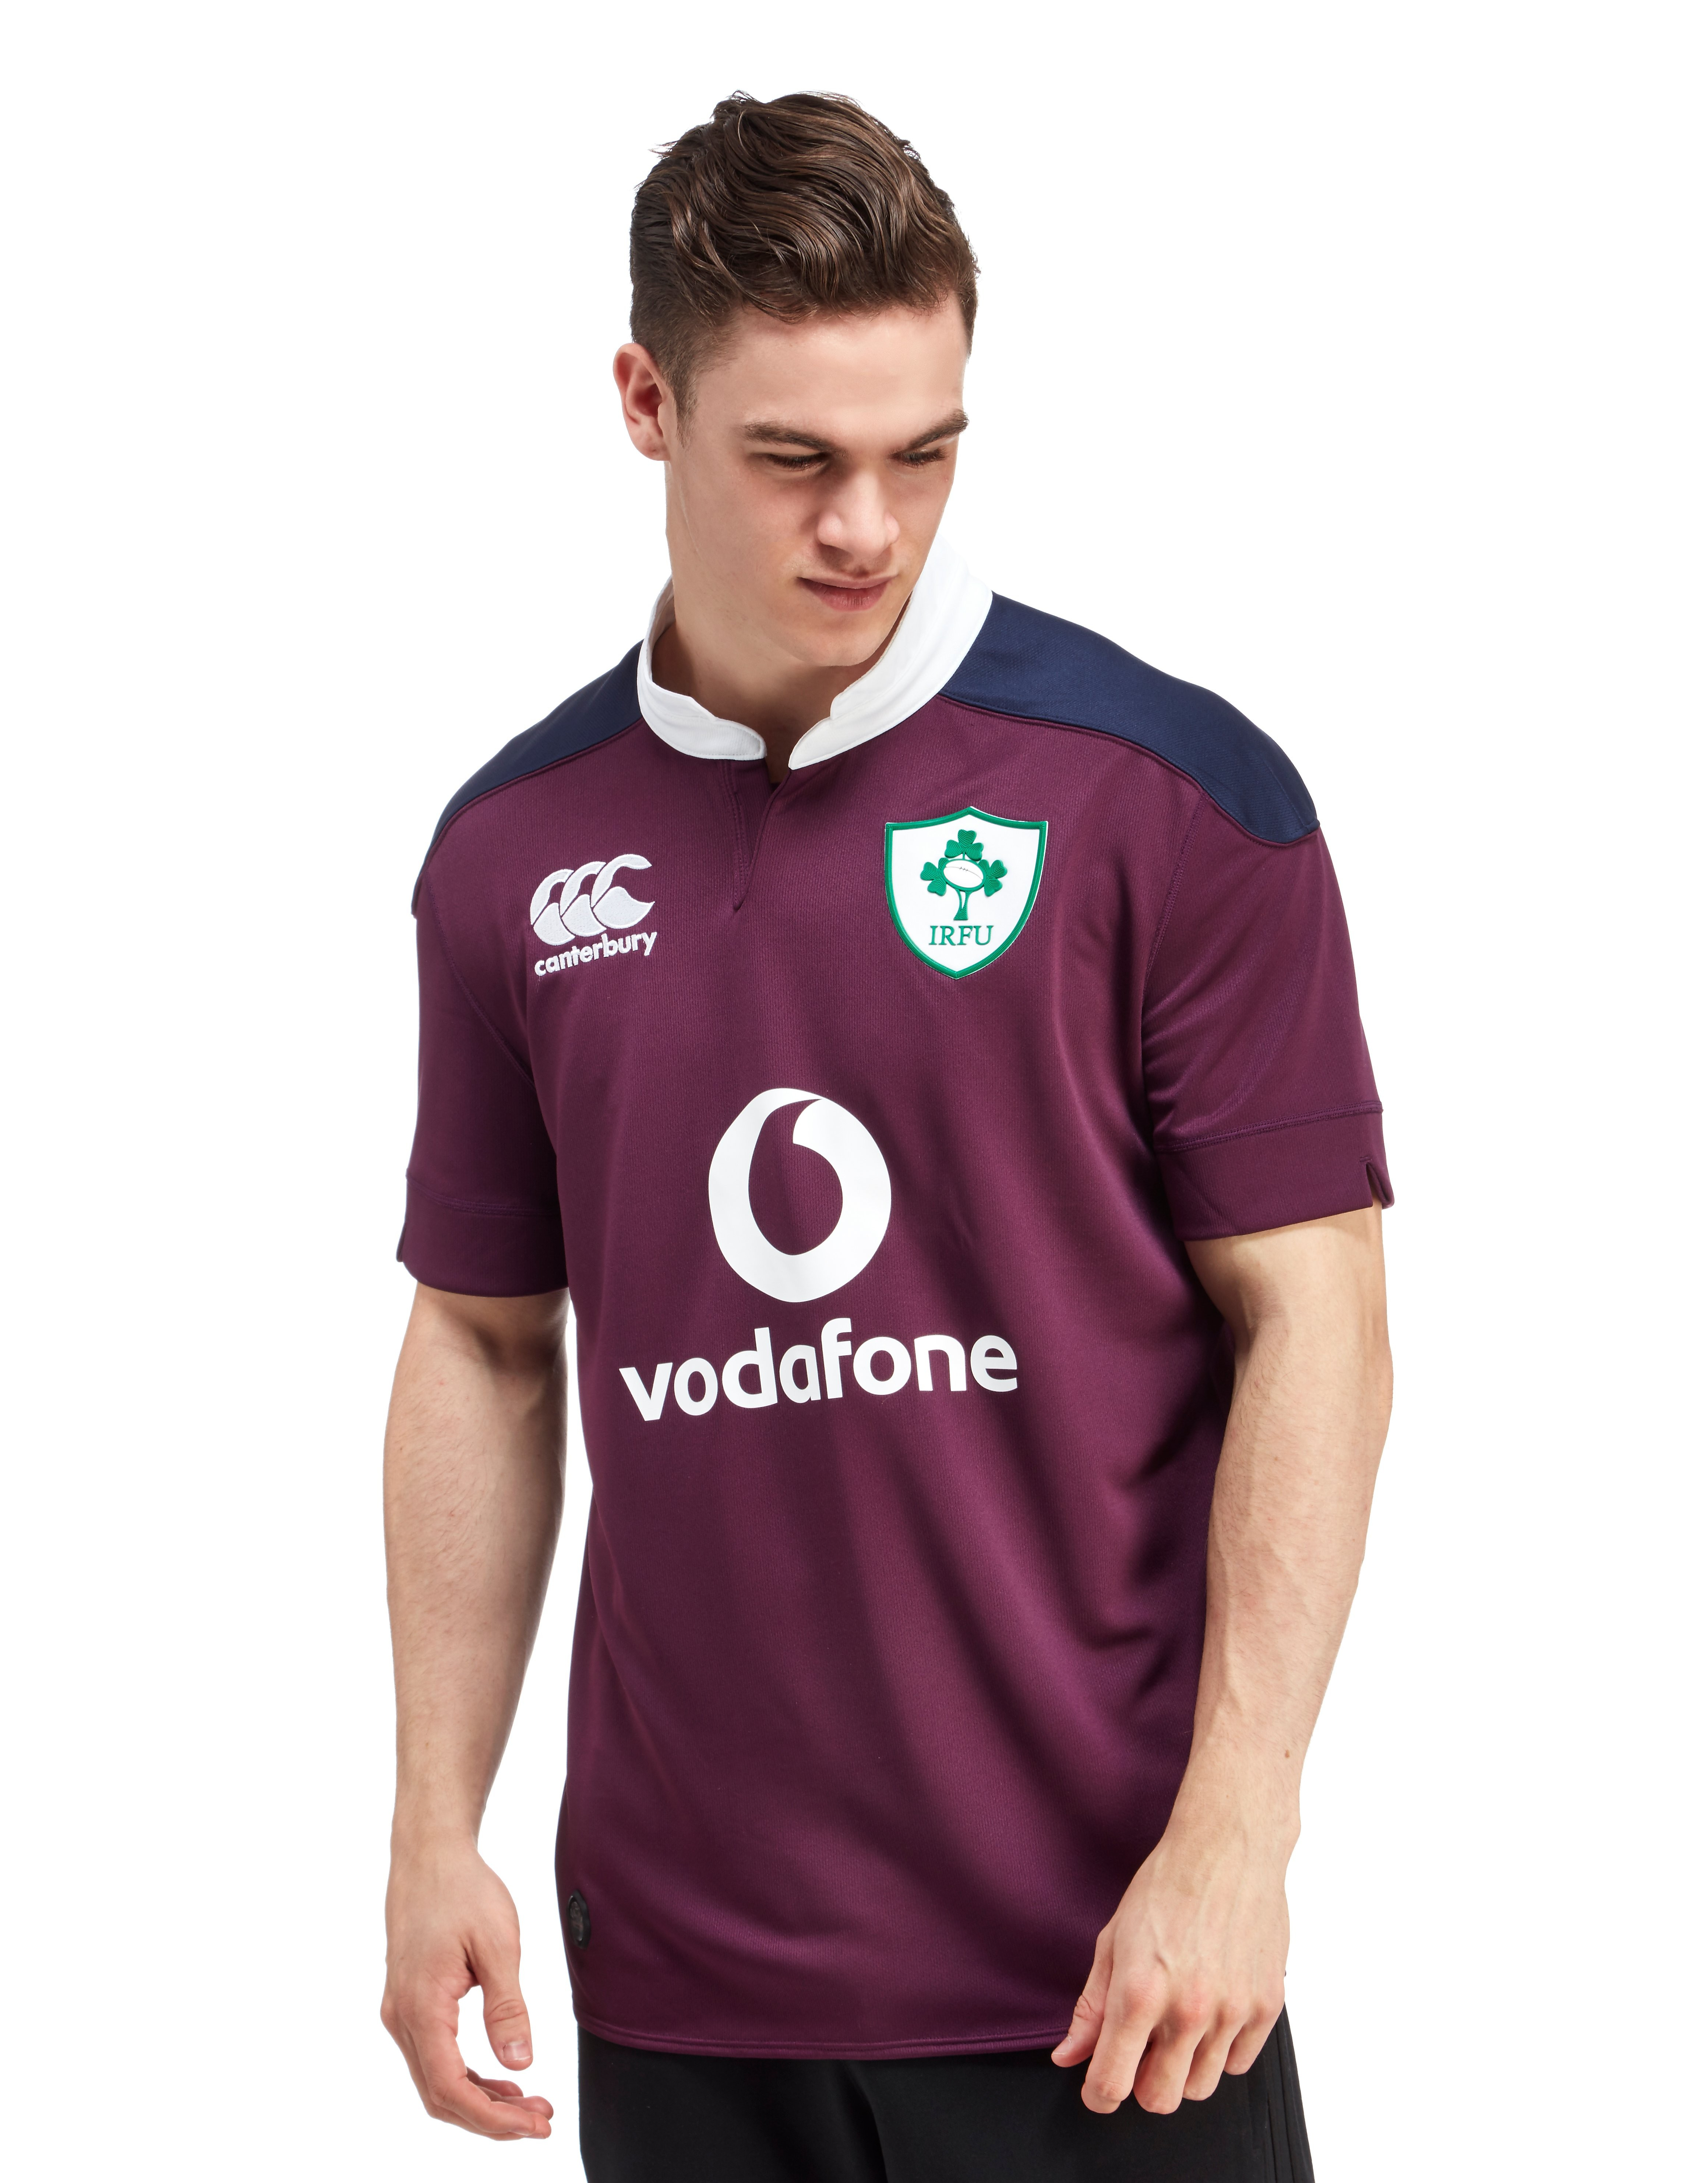 Canterbury Ireland RFU 2016/17 Alternate Shirt